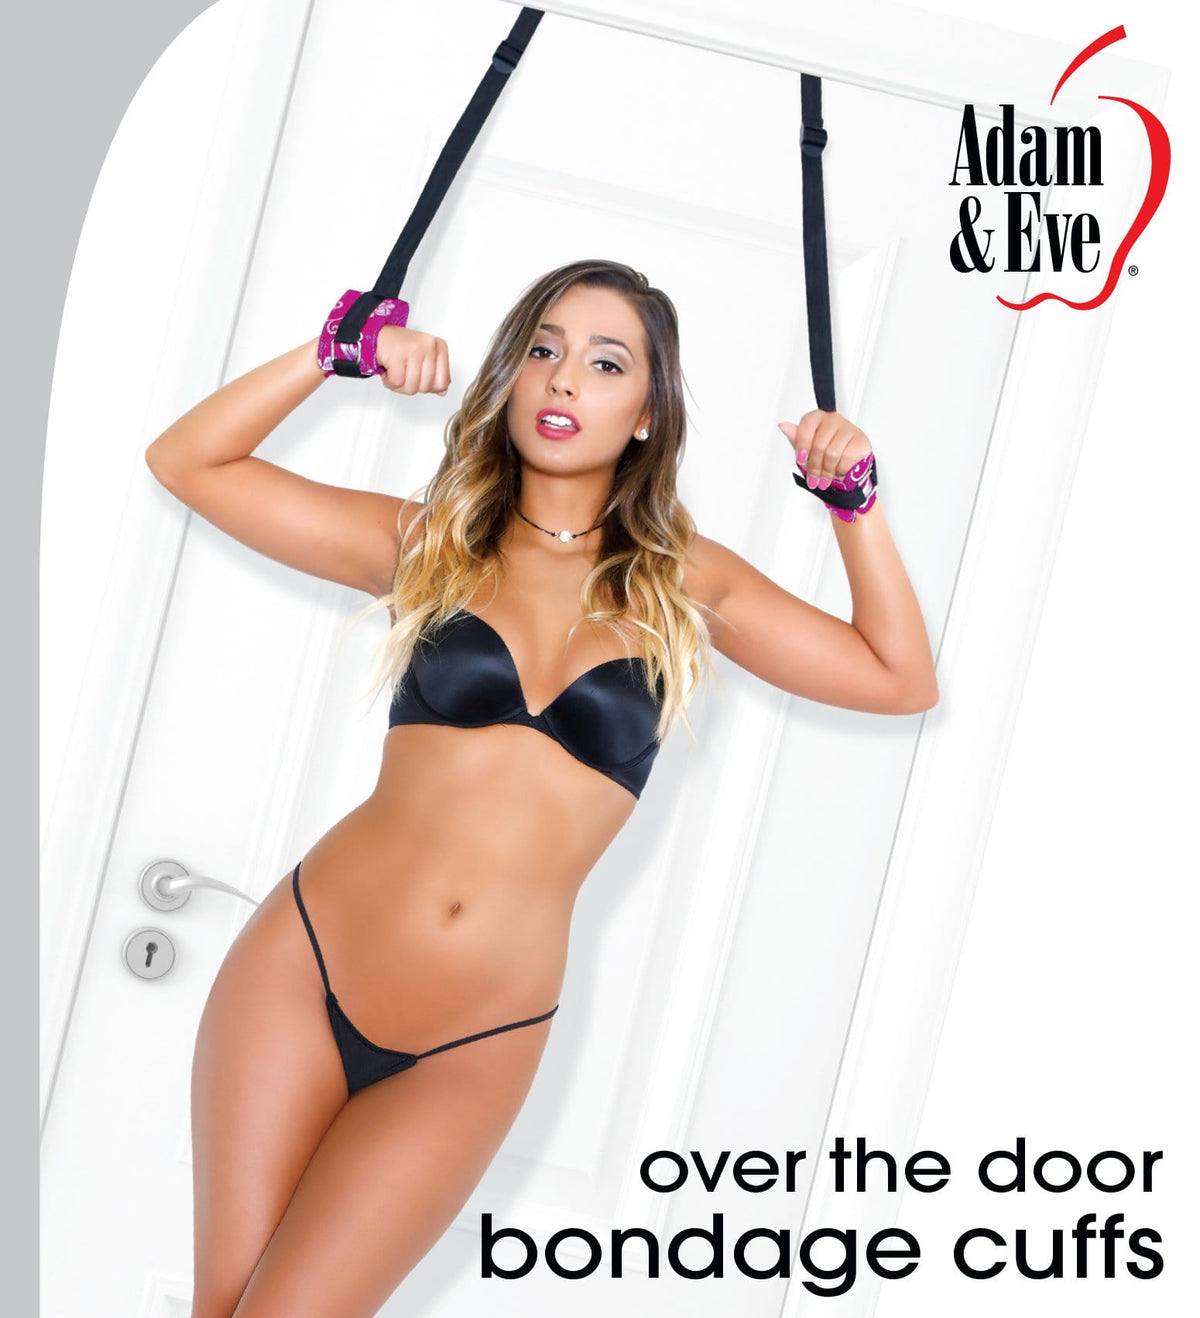 over the door bondage cuffs     Adam and Eve Products